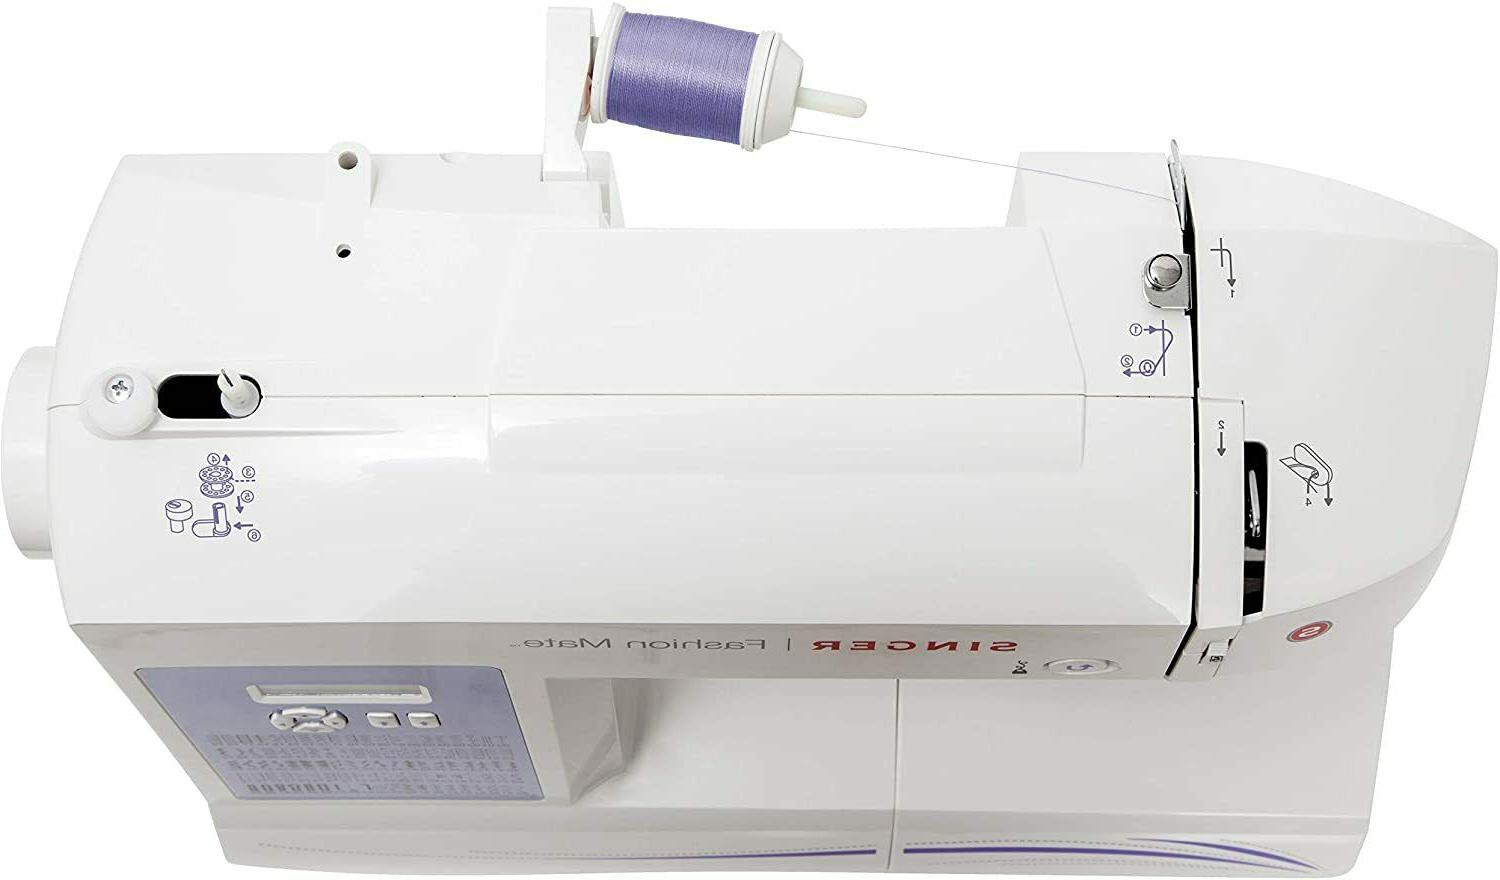 Singer Fashion Mate 5560 Sewing Machine with Built-In Stitches - Refurbished